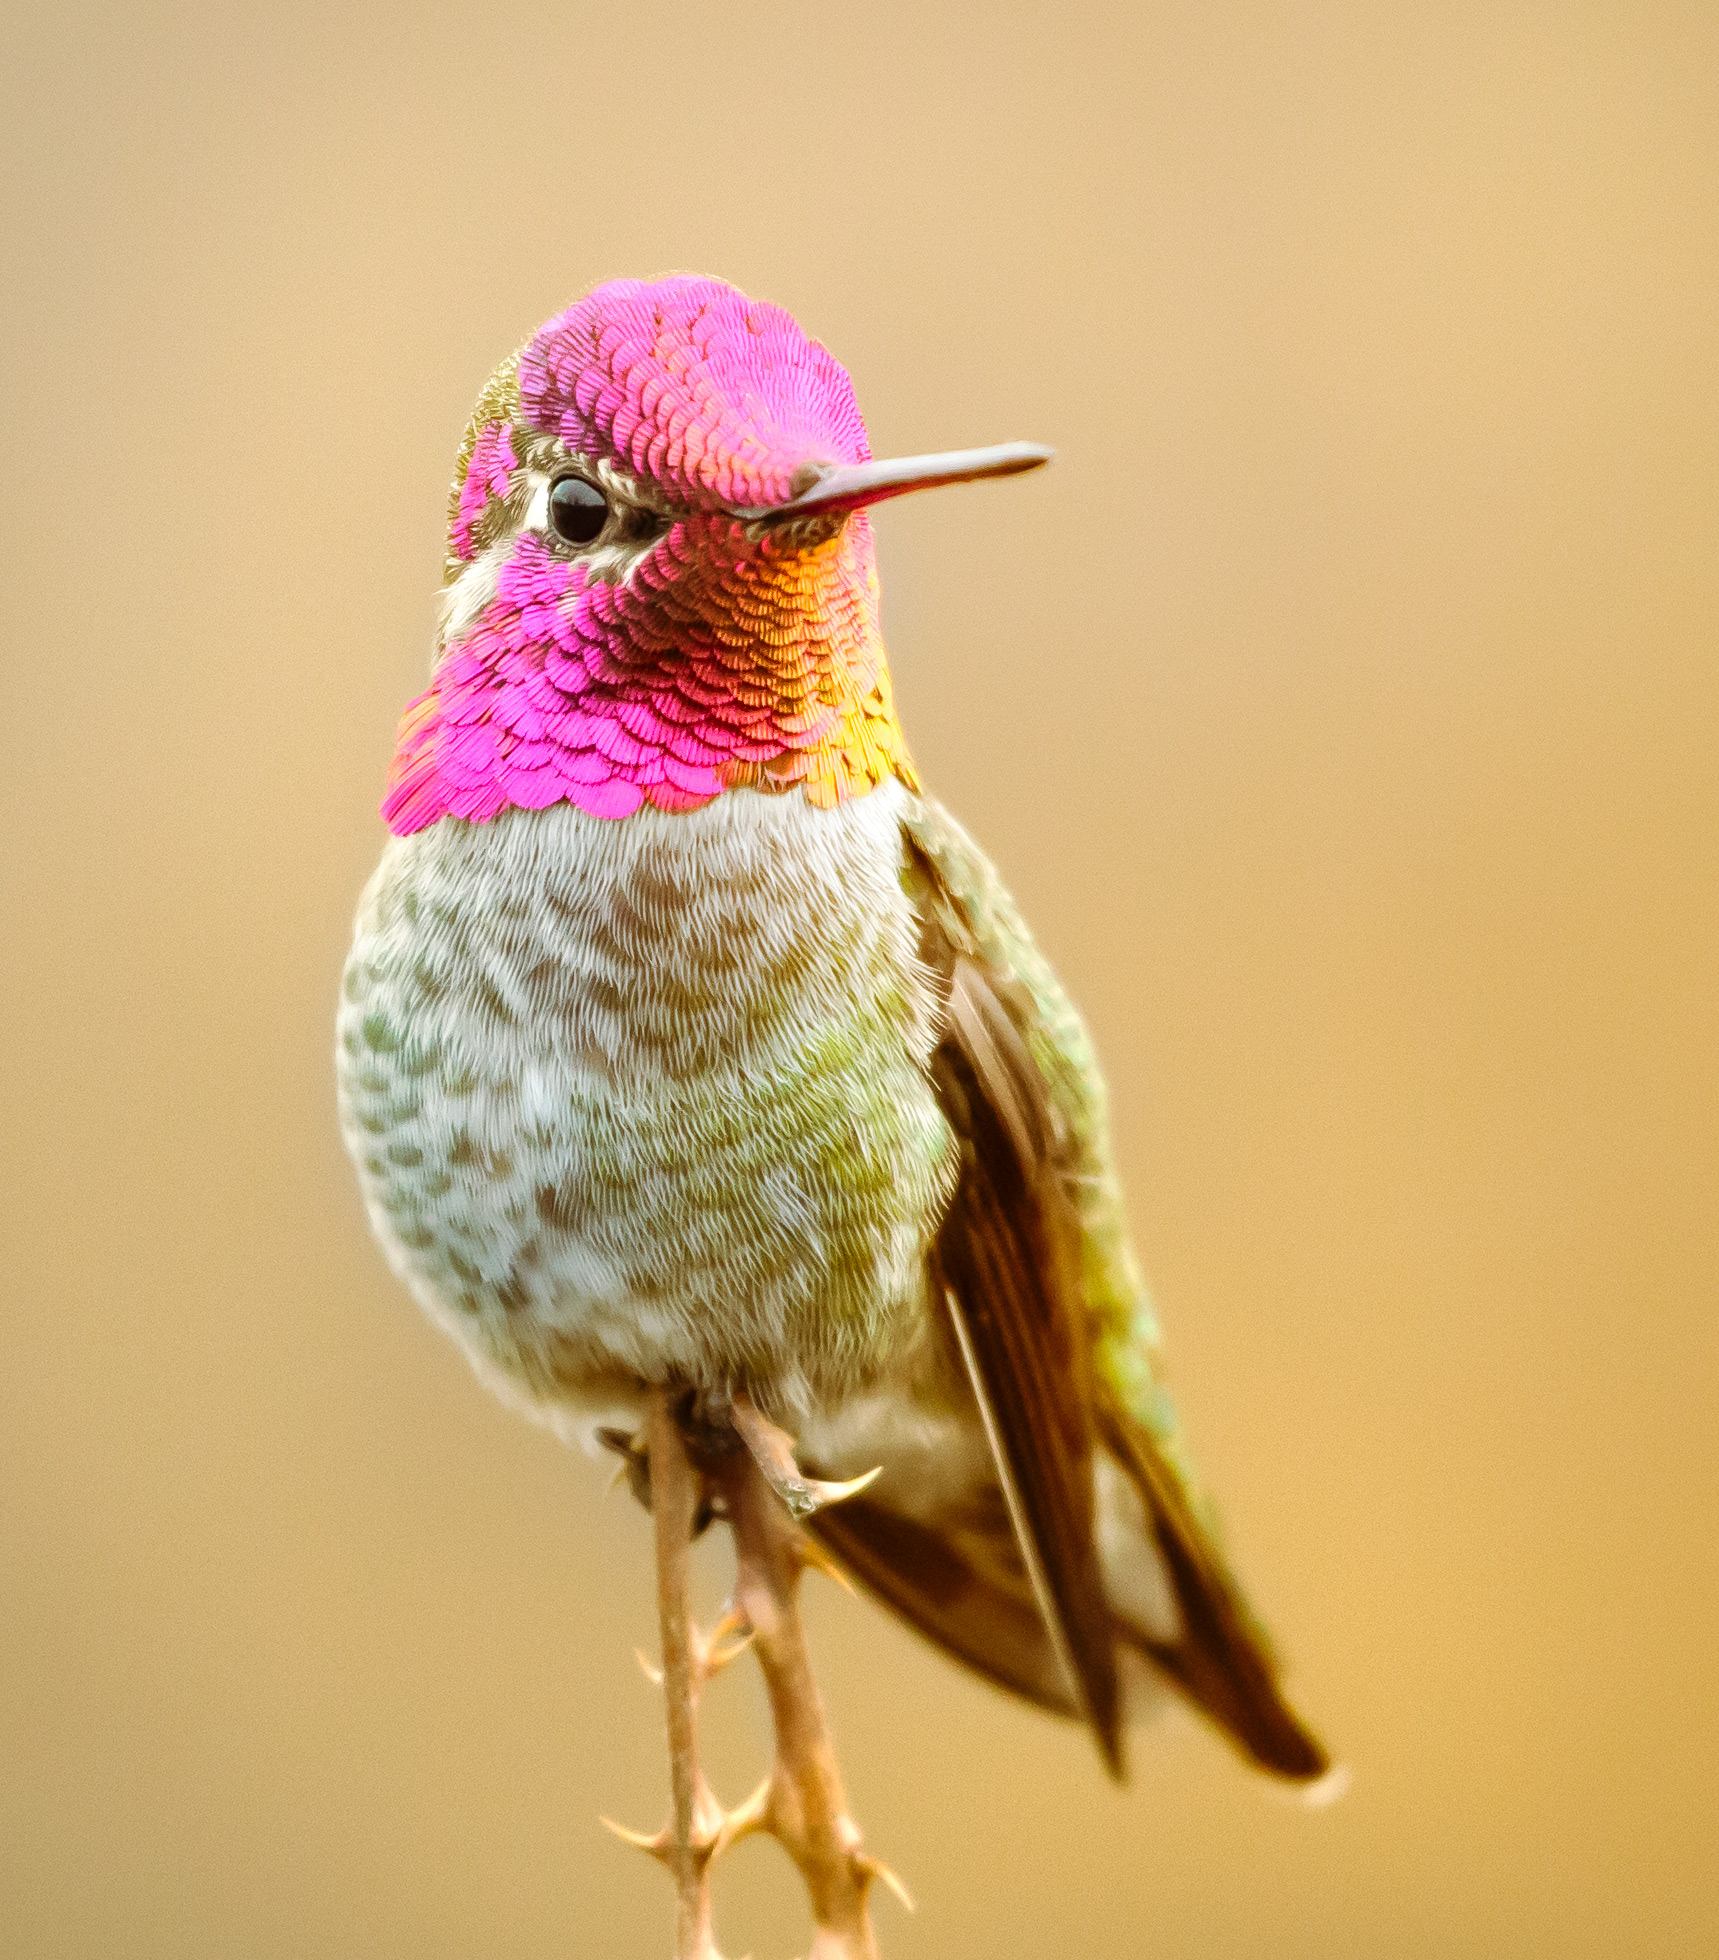 Annas-hummer-Saved-for-Web-kdlekje.jpg